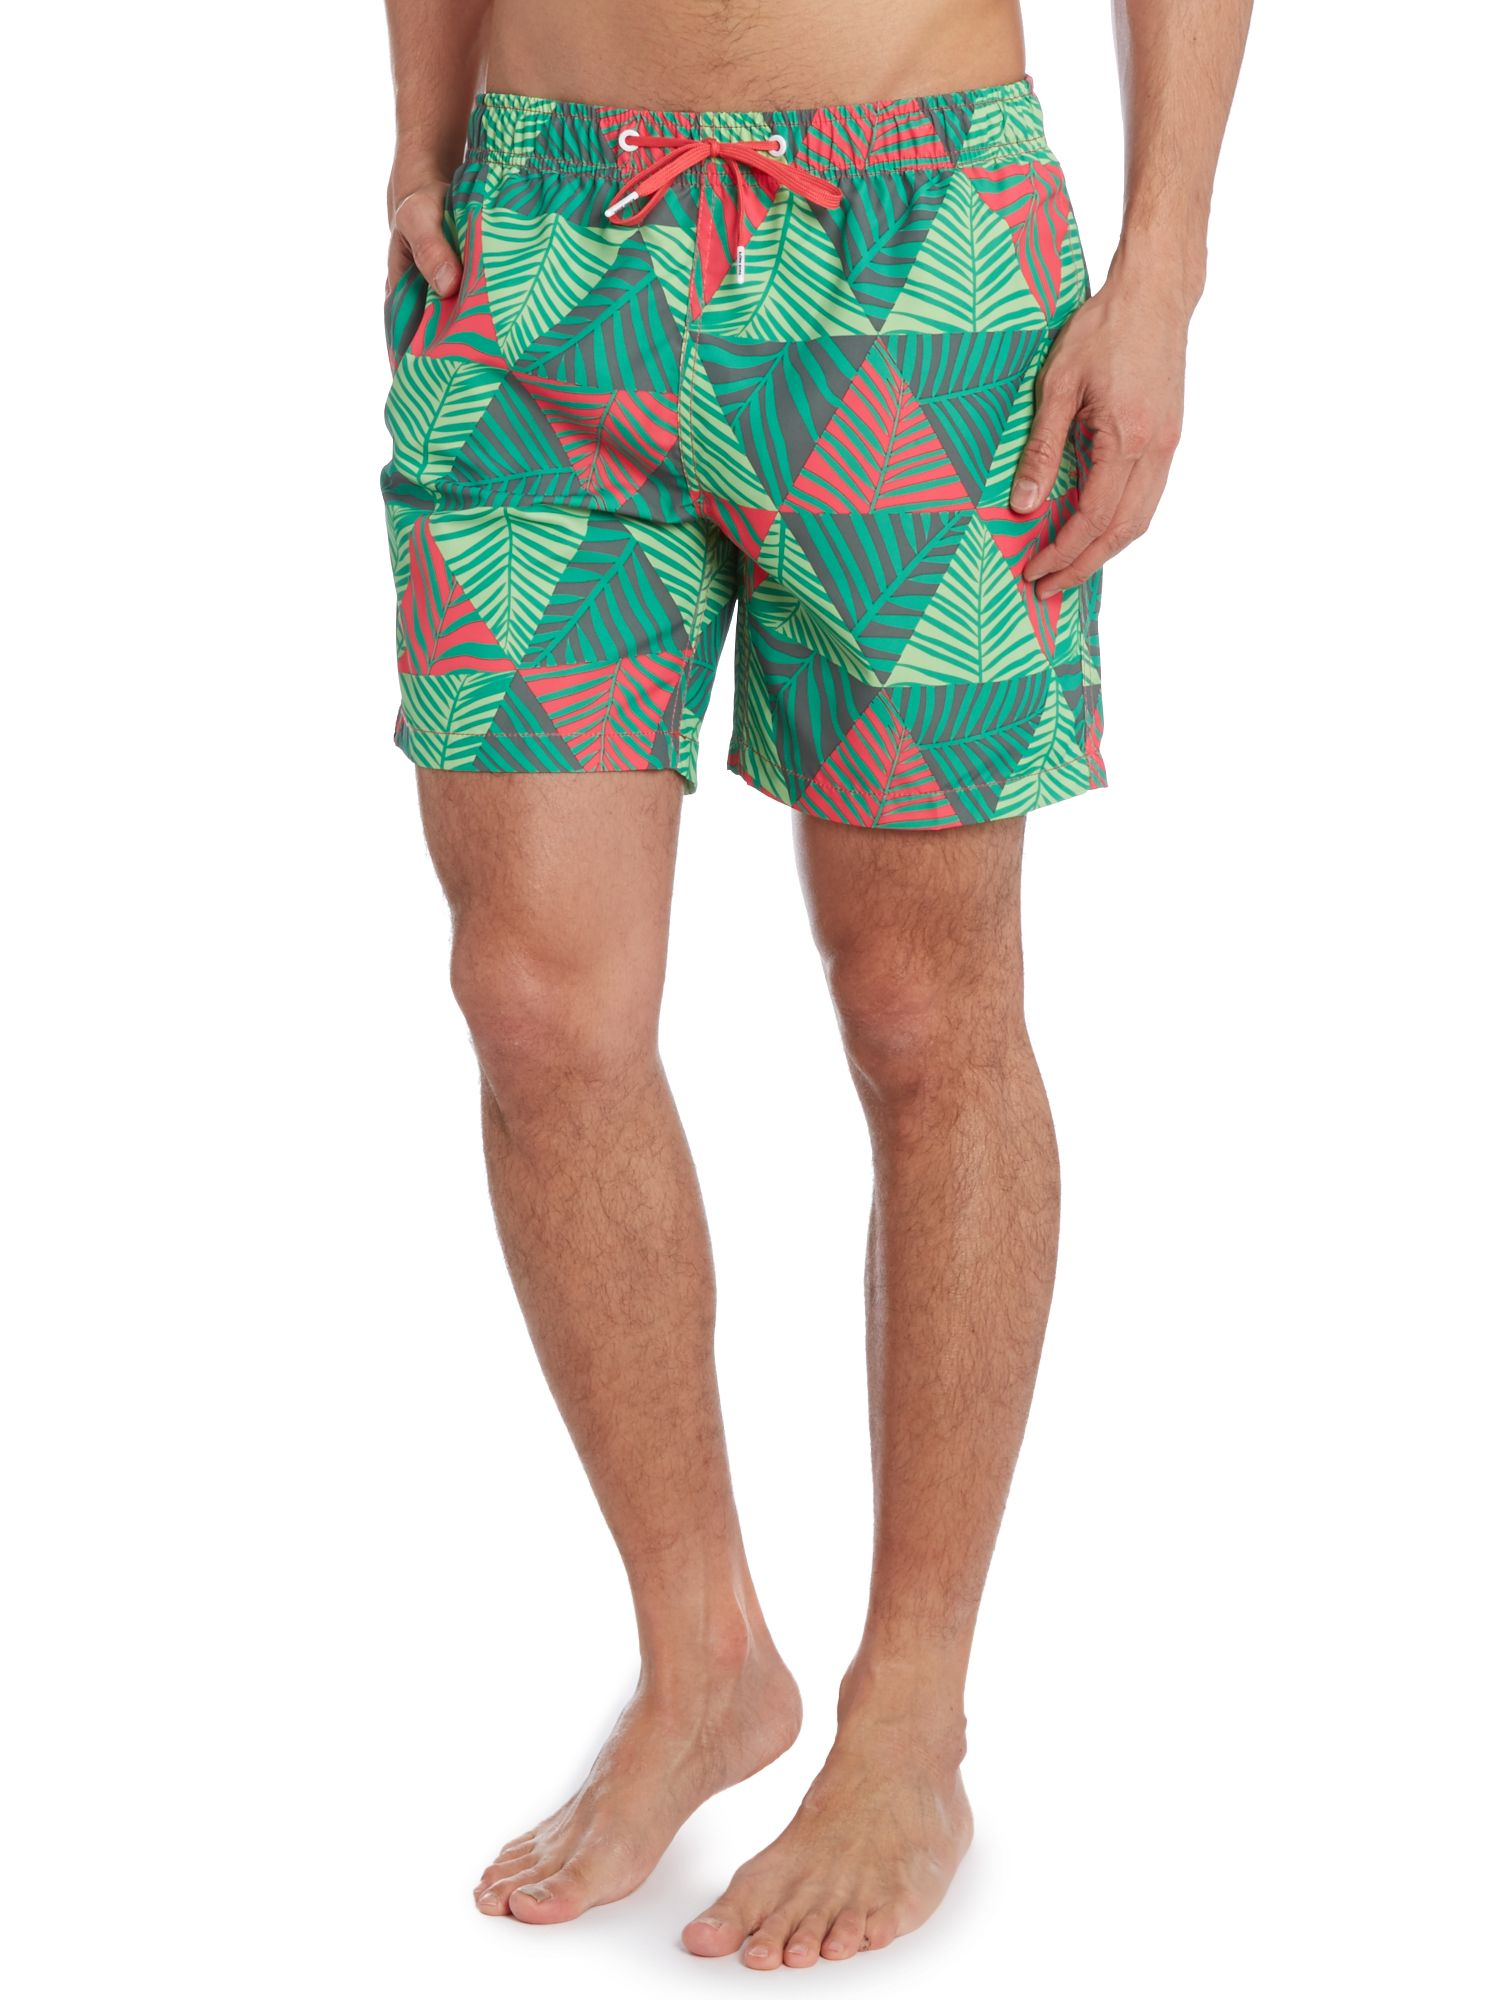 Prism palm all over print swim short